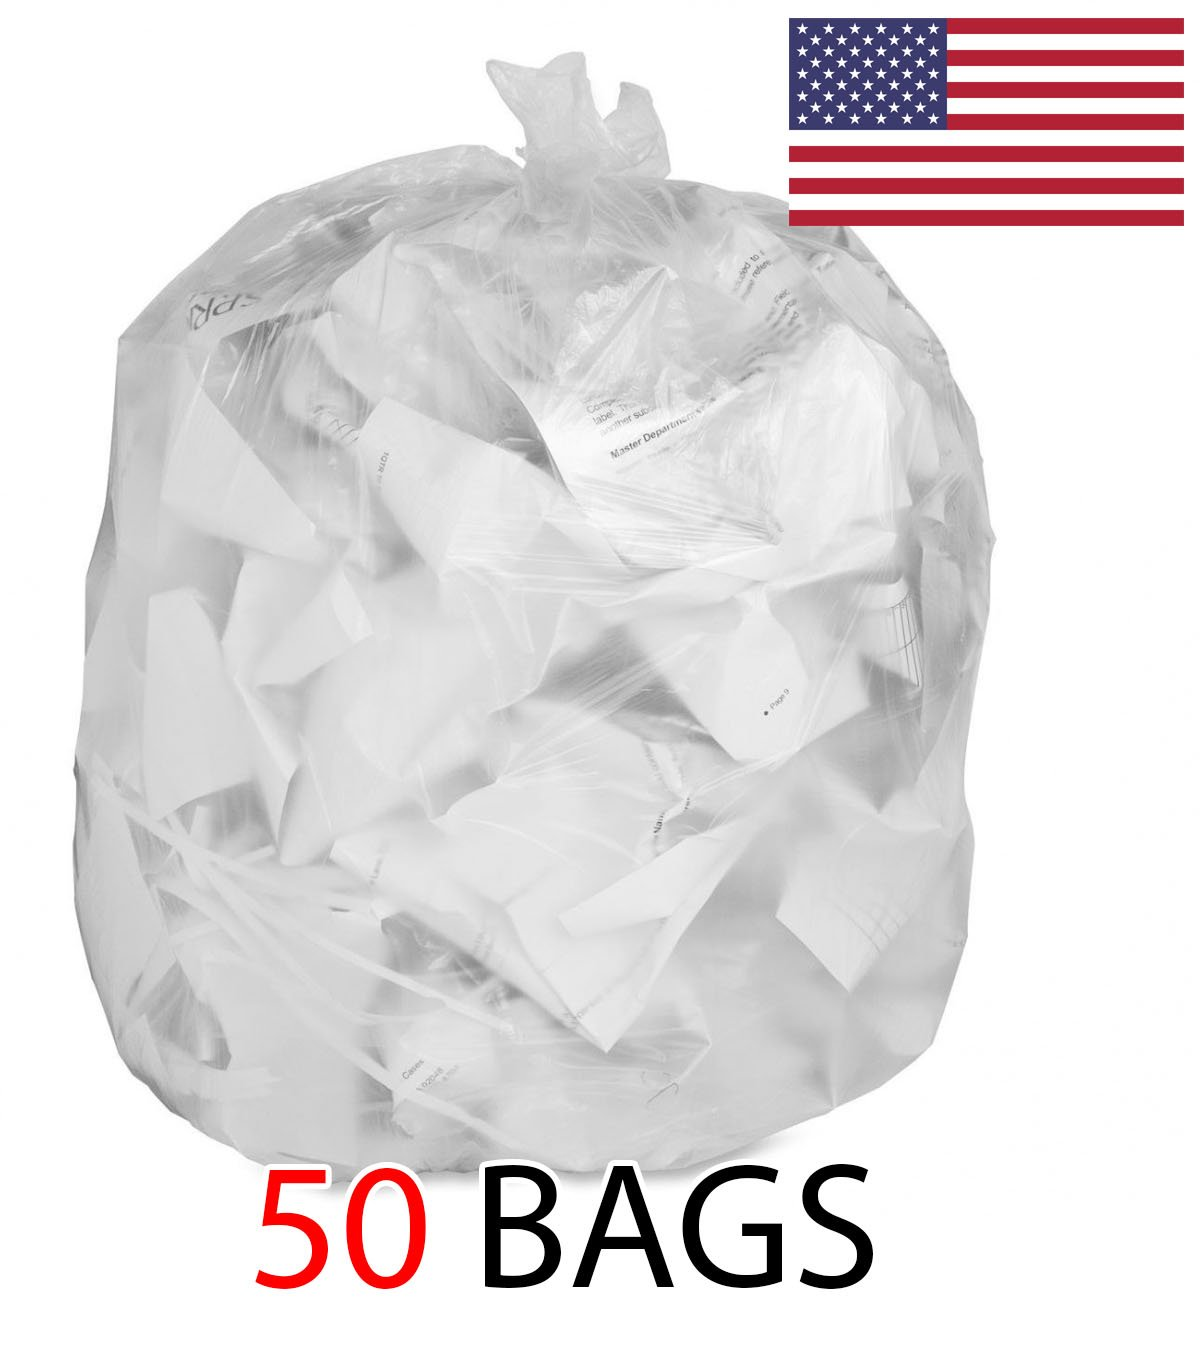 Ox Plastics 55 Gallon Recycle Bags, 36 X 52, 1.5 mil Strength, MADE IN USA (50, Clear) by Ox Plastics